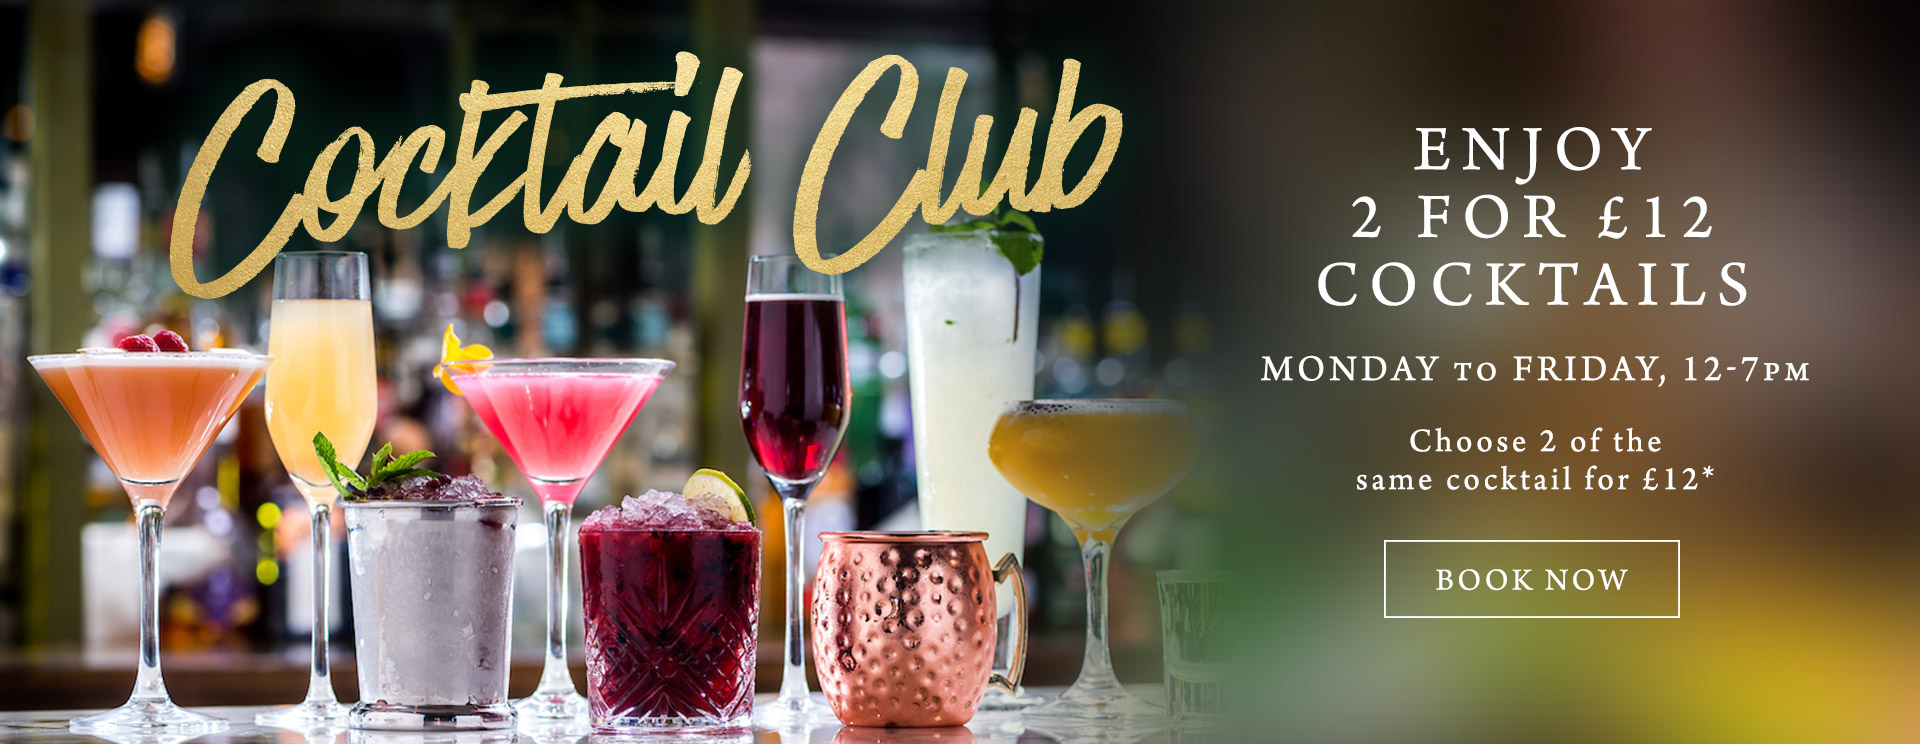 2 for £12 cocktails at The Hole in the Wall